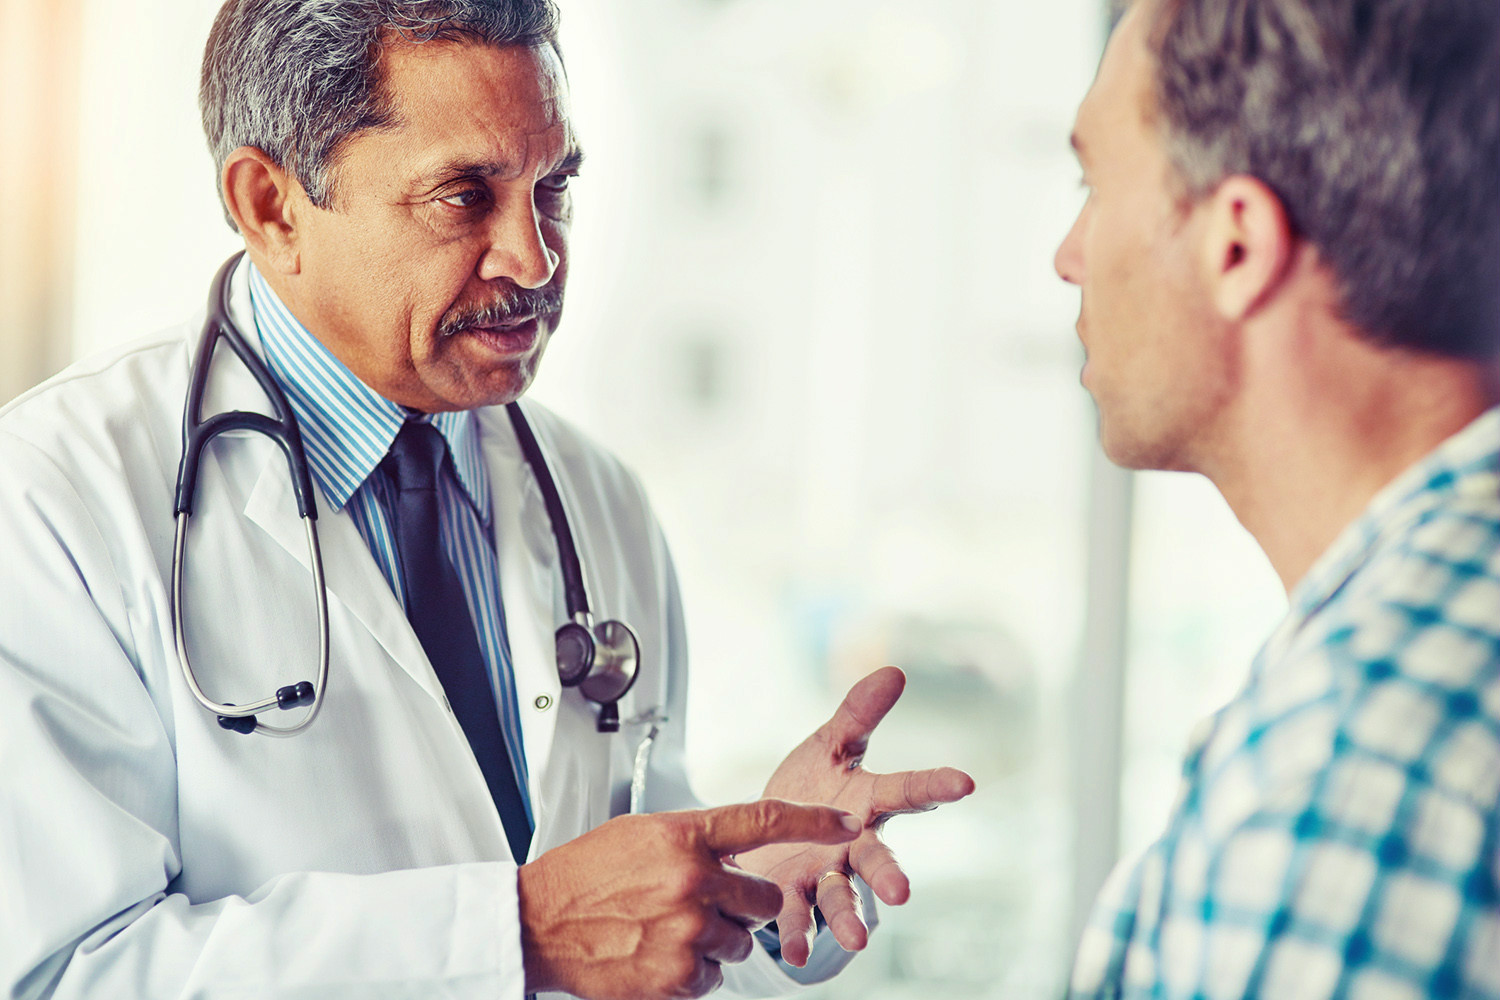 Self-Exams to Prevent Testicular Cancer